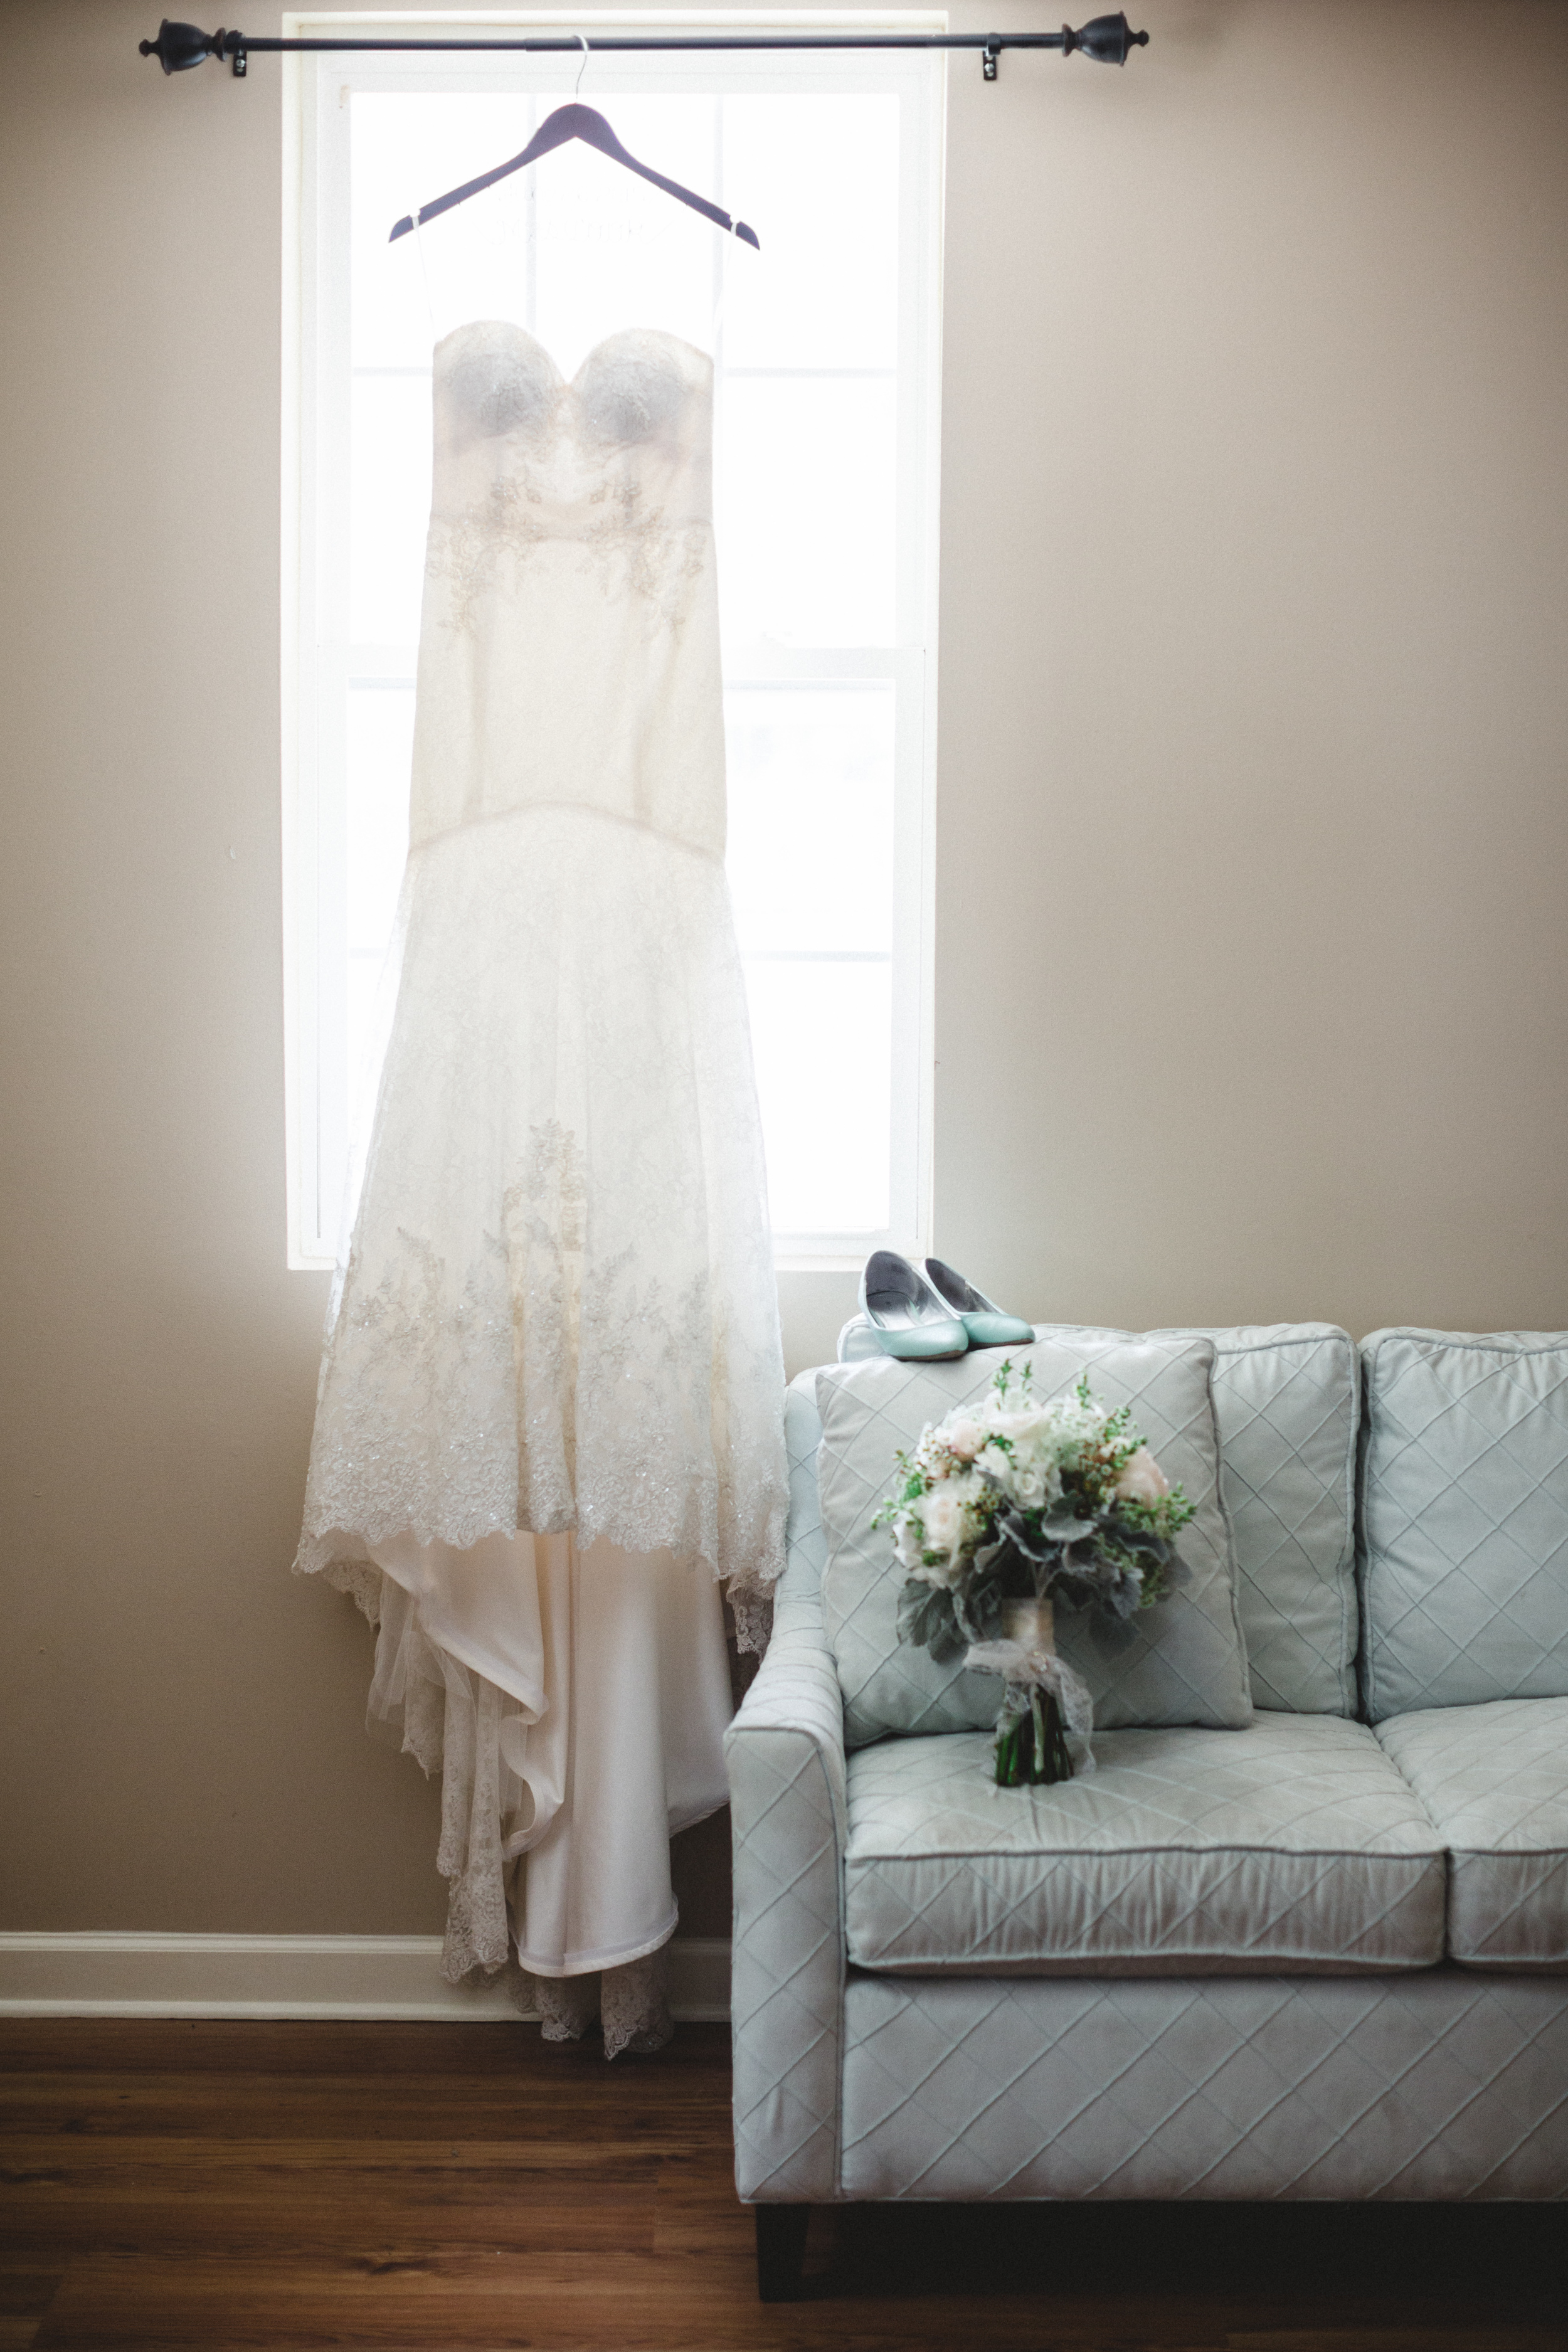 Hillary-and-Brian-izzy-hudgins-photography-anais-anette-tristan-lace-mermaid-wedding-dress-ivory-and-beau-bridal-boutique-savannah-bridal-boutique-savannah-wedding-dresses-savannah-bridal-gowns-savannah-wedding-dresses-first-babtist-savanna.jpg